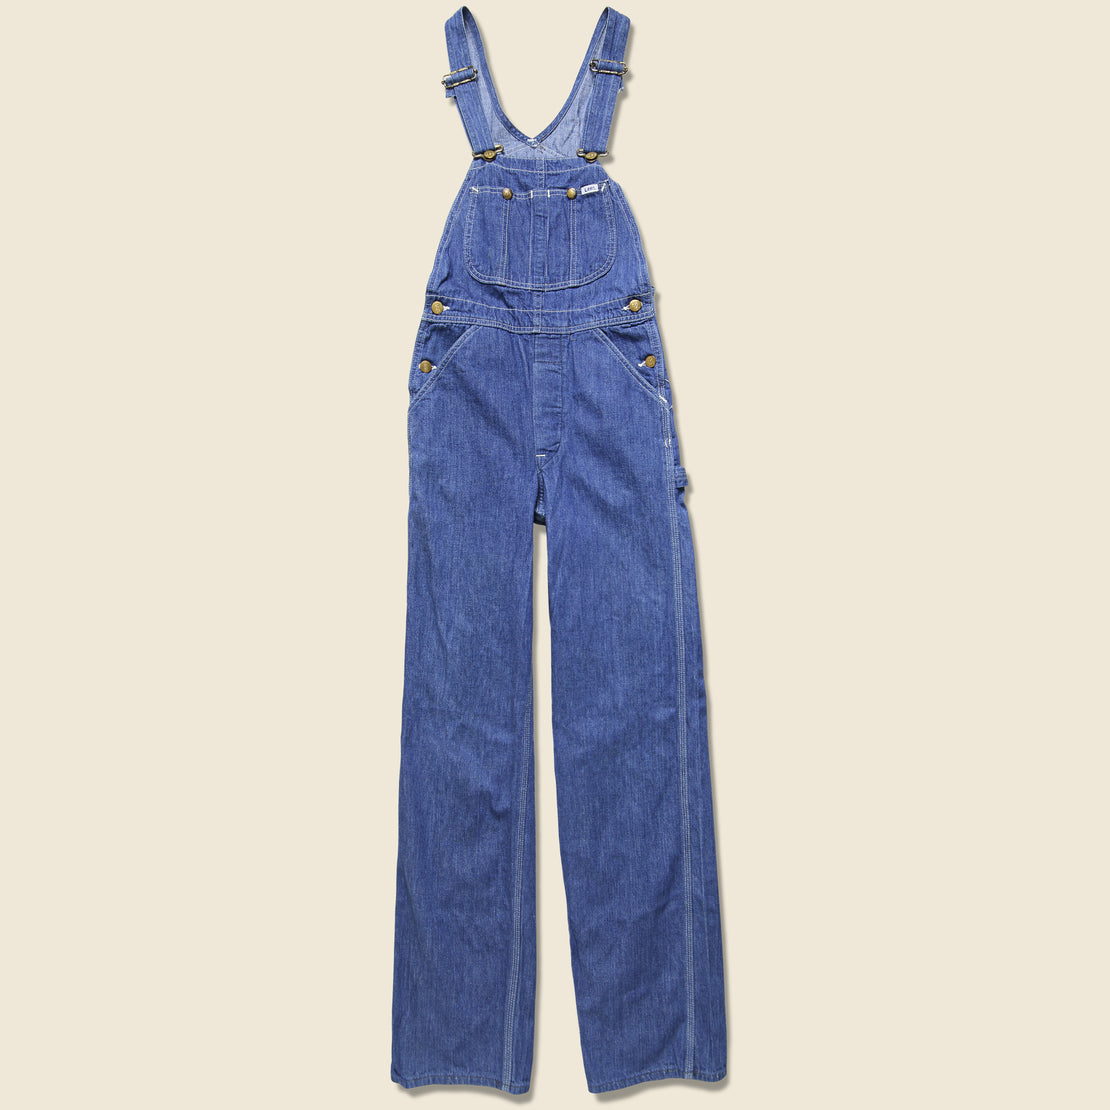 Vintage Lee Denim Overalls - Indigo